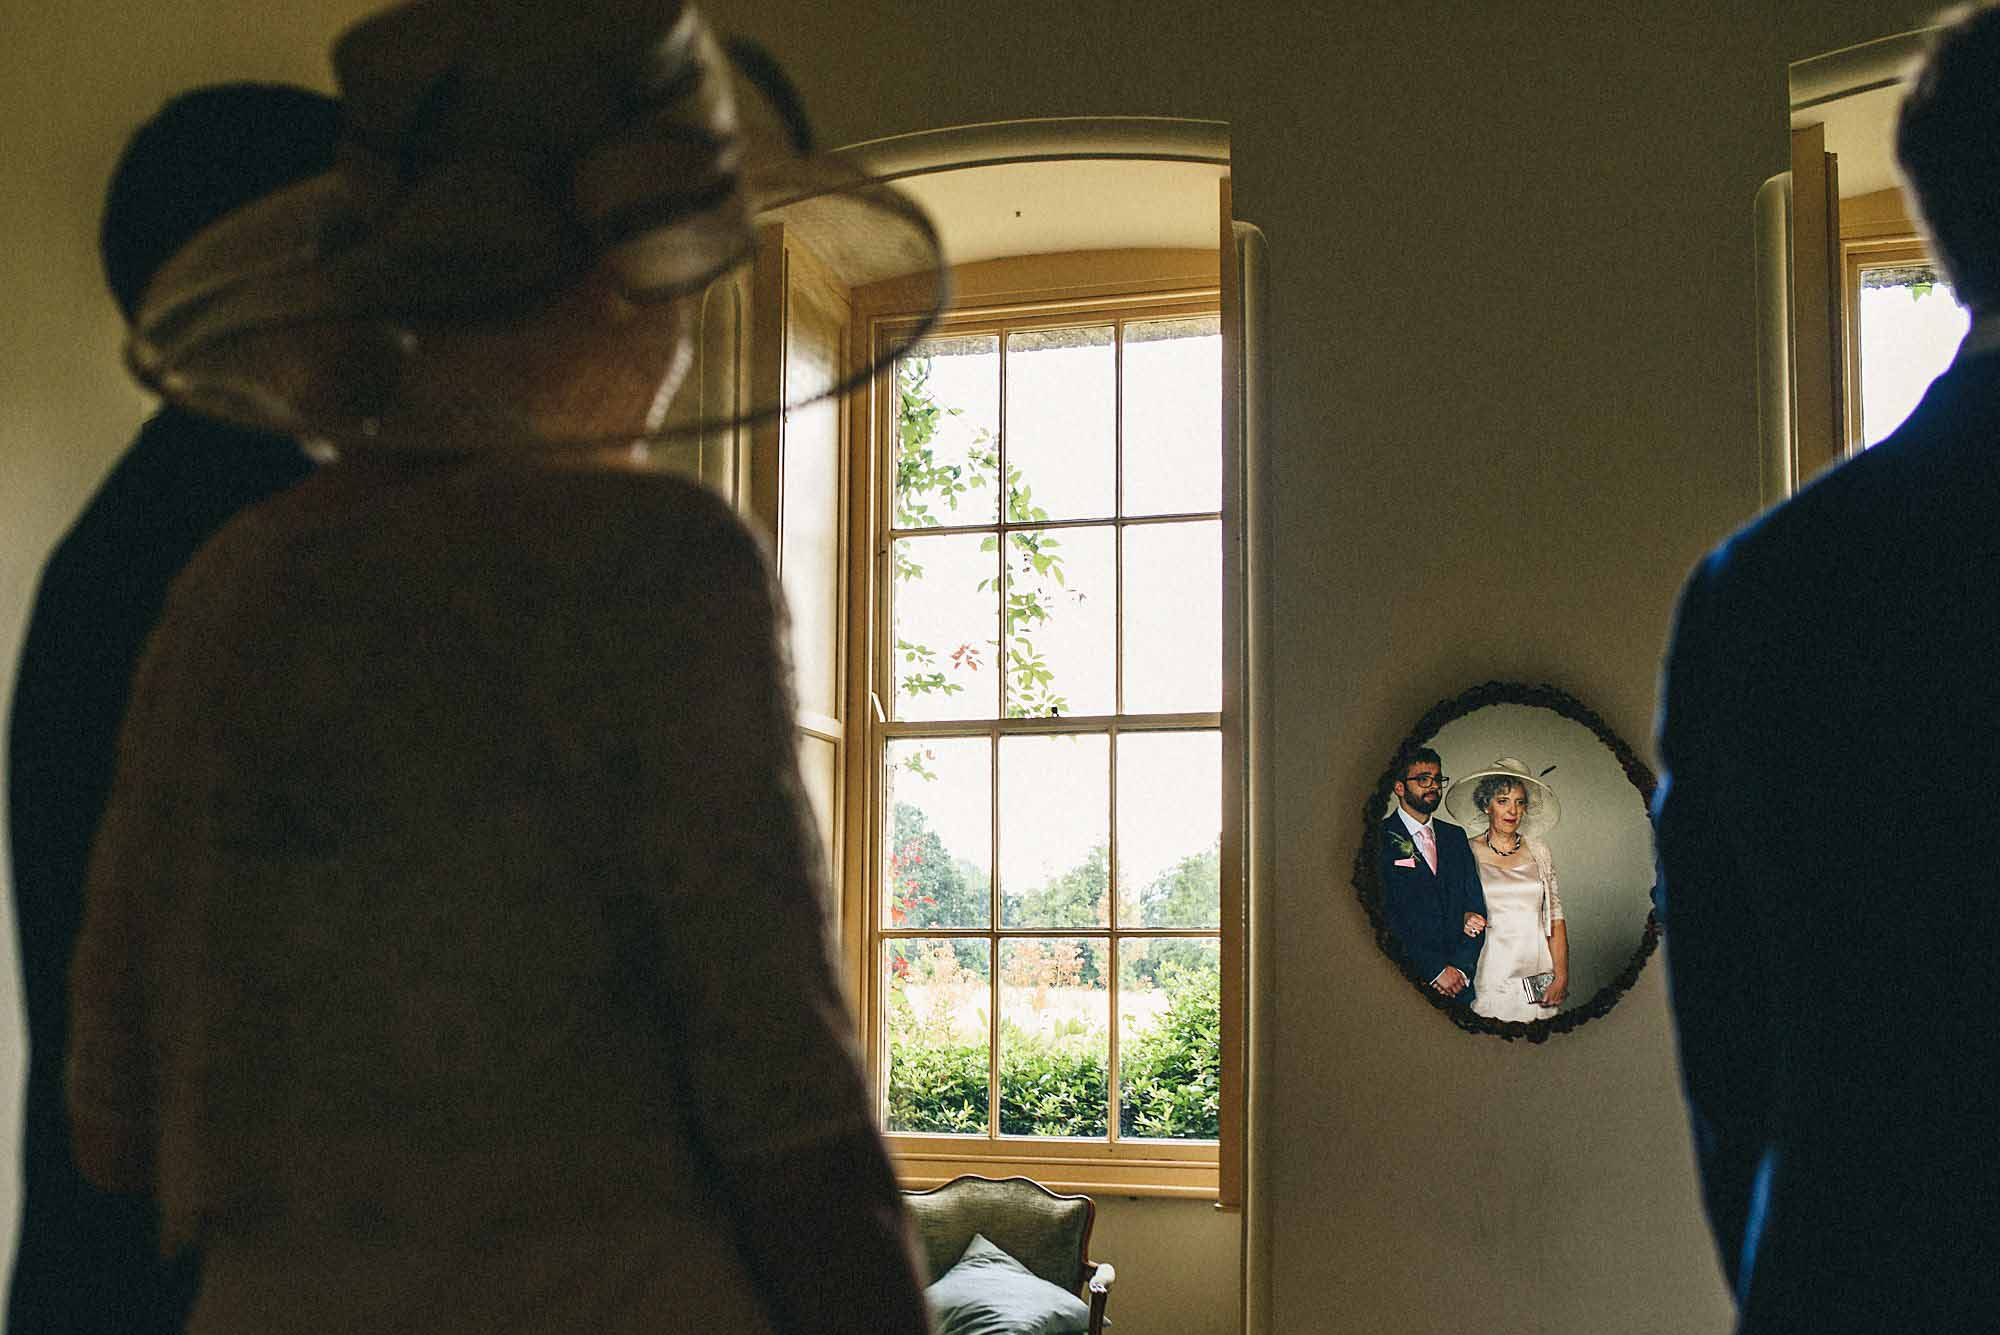 Narborough Hall Gardens wedding photography 28 Completed